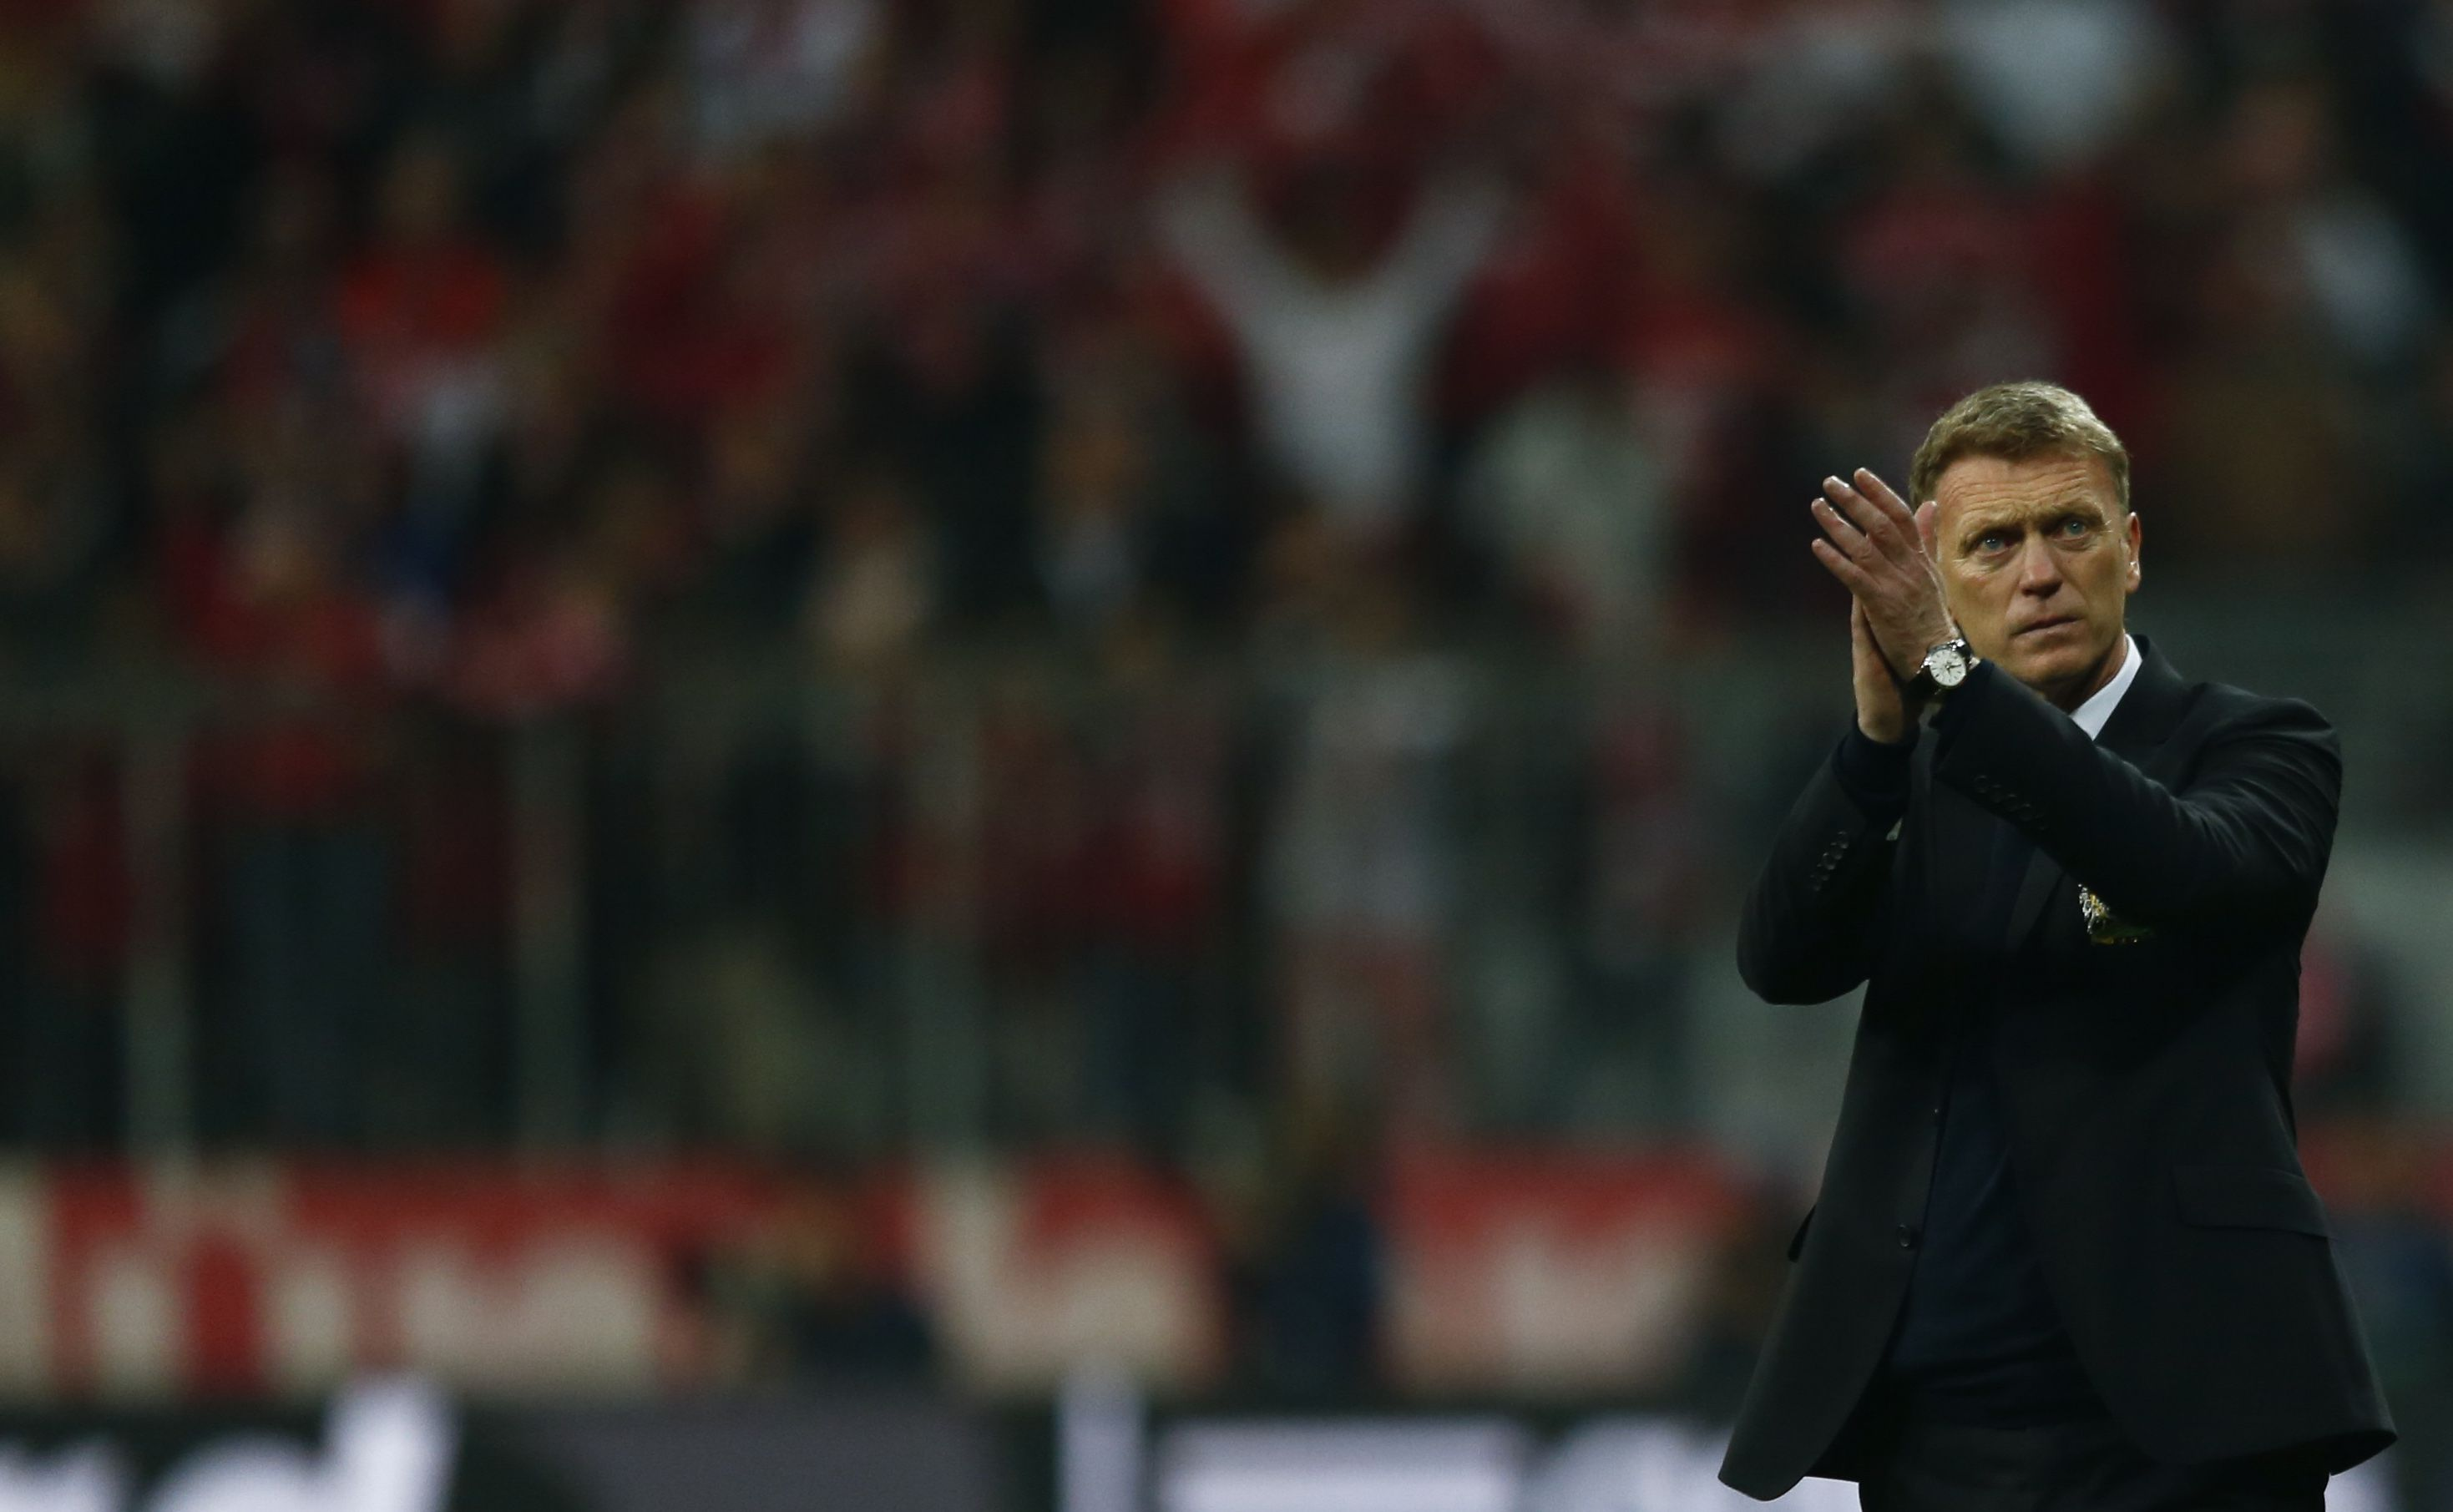 Manchester United's manager David Moyes applauds after their Champions League quarter-final second leg soccer match against Bayern Munich in Munich, April 9, 2014. REUTERS/Michael Dalder (GERMANY - Tags: SPORT SOCCER) - RTR3KMNS